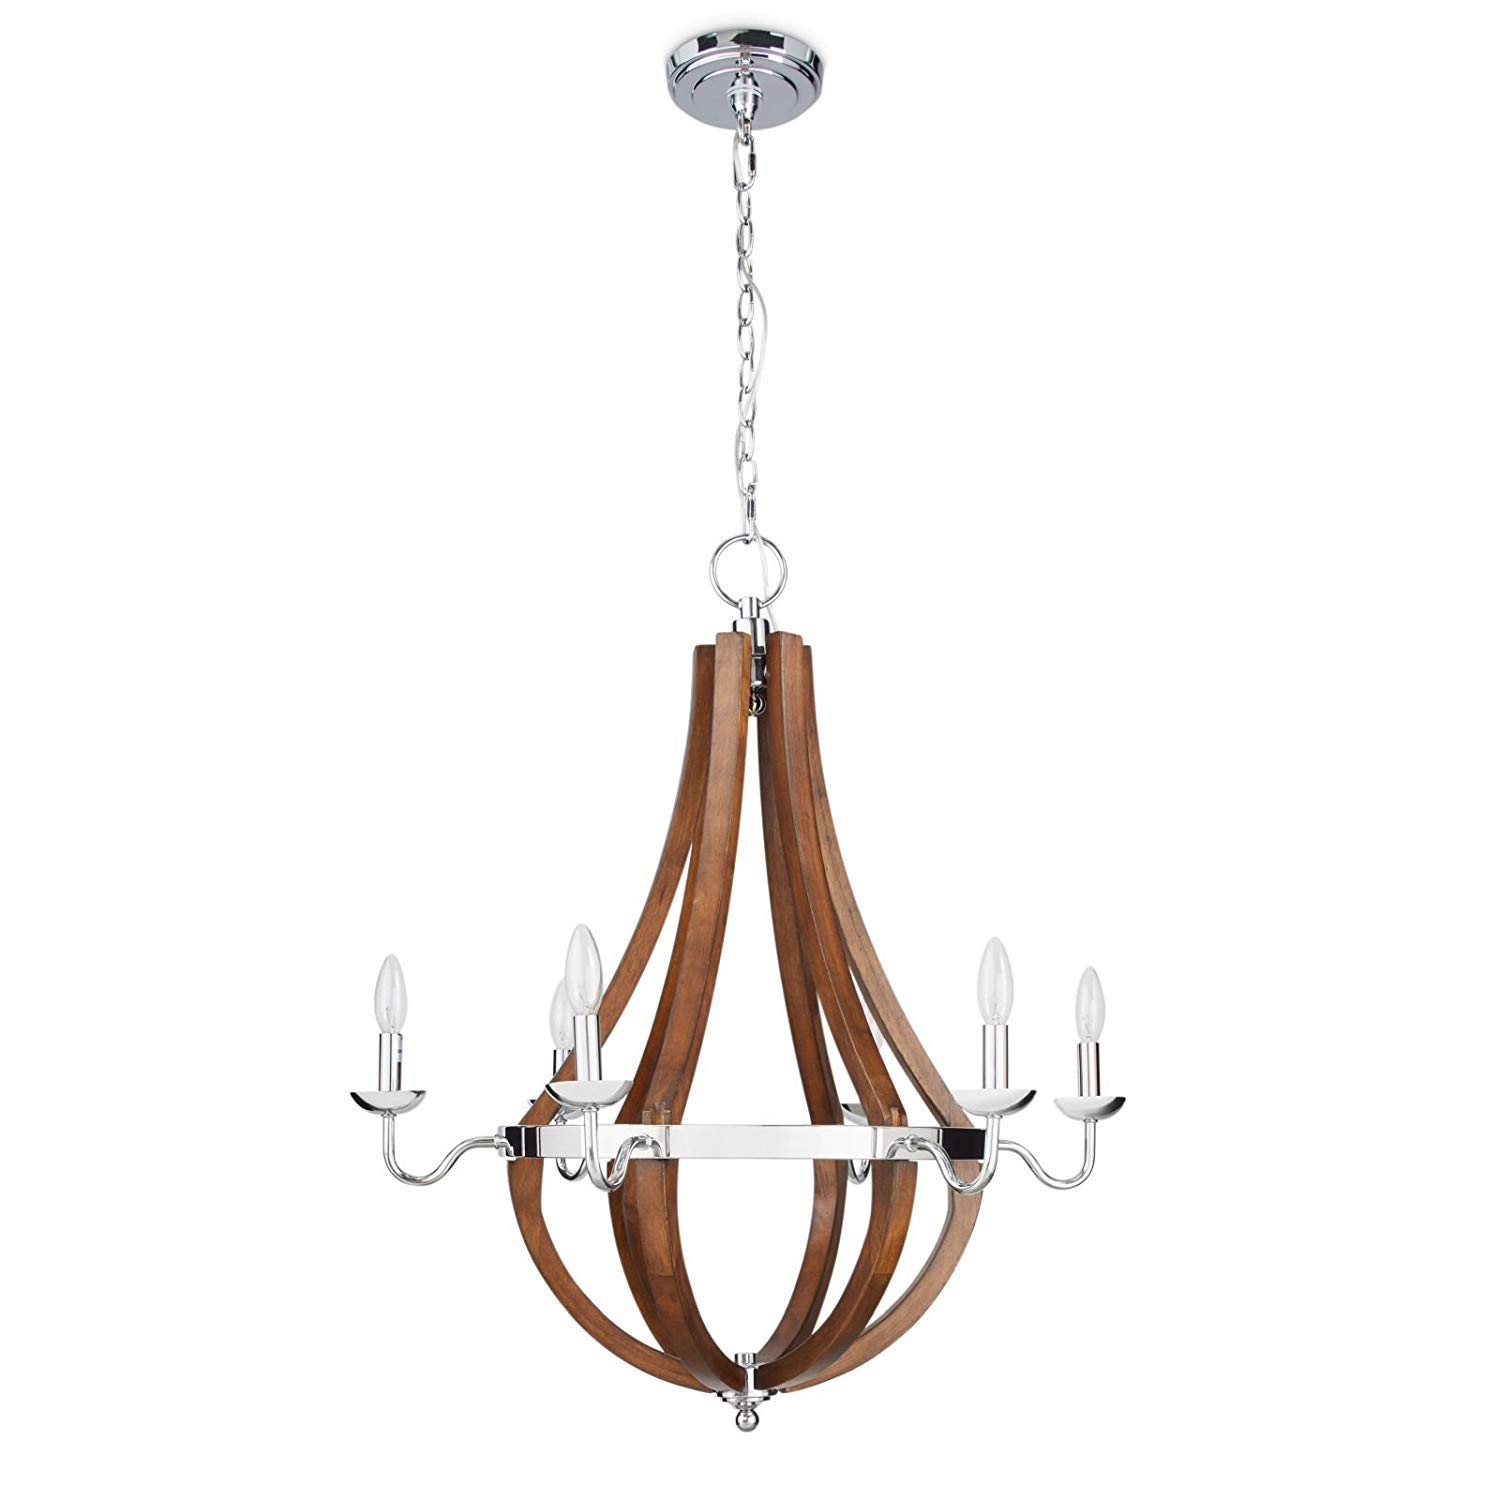 Wine barrel rustic chandelier centerpiece for foyers and dining rooms with high ceilings modern farmhouse light fixture in silver chrome finish round